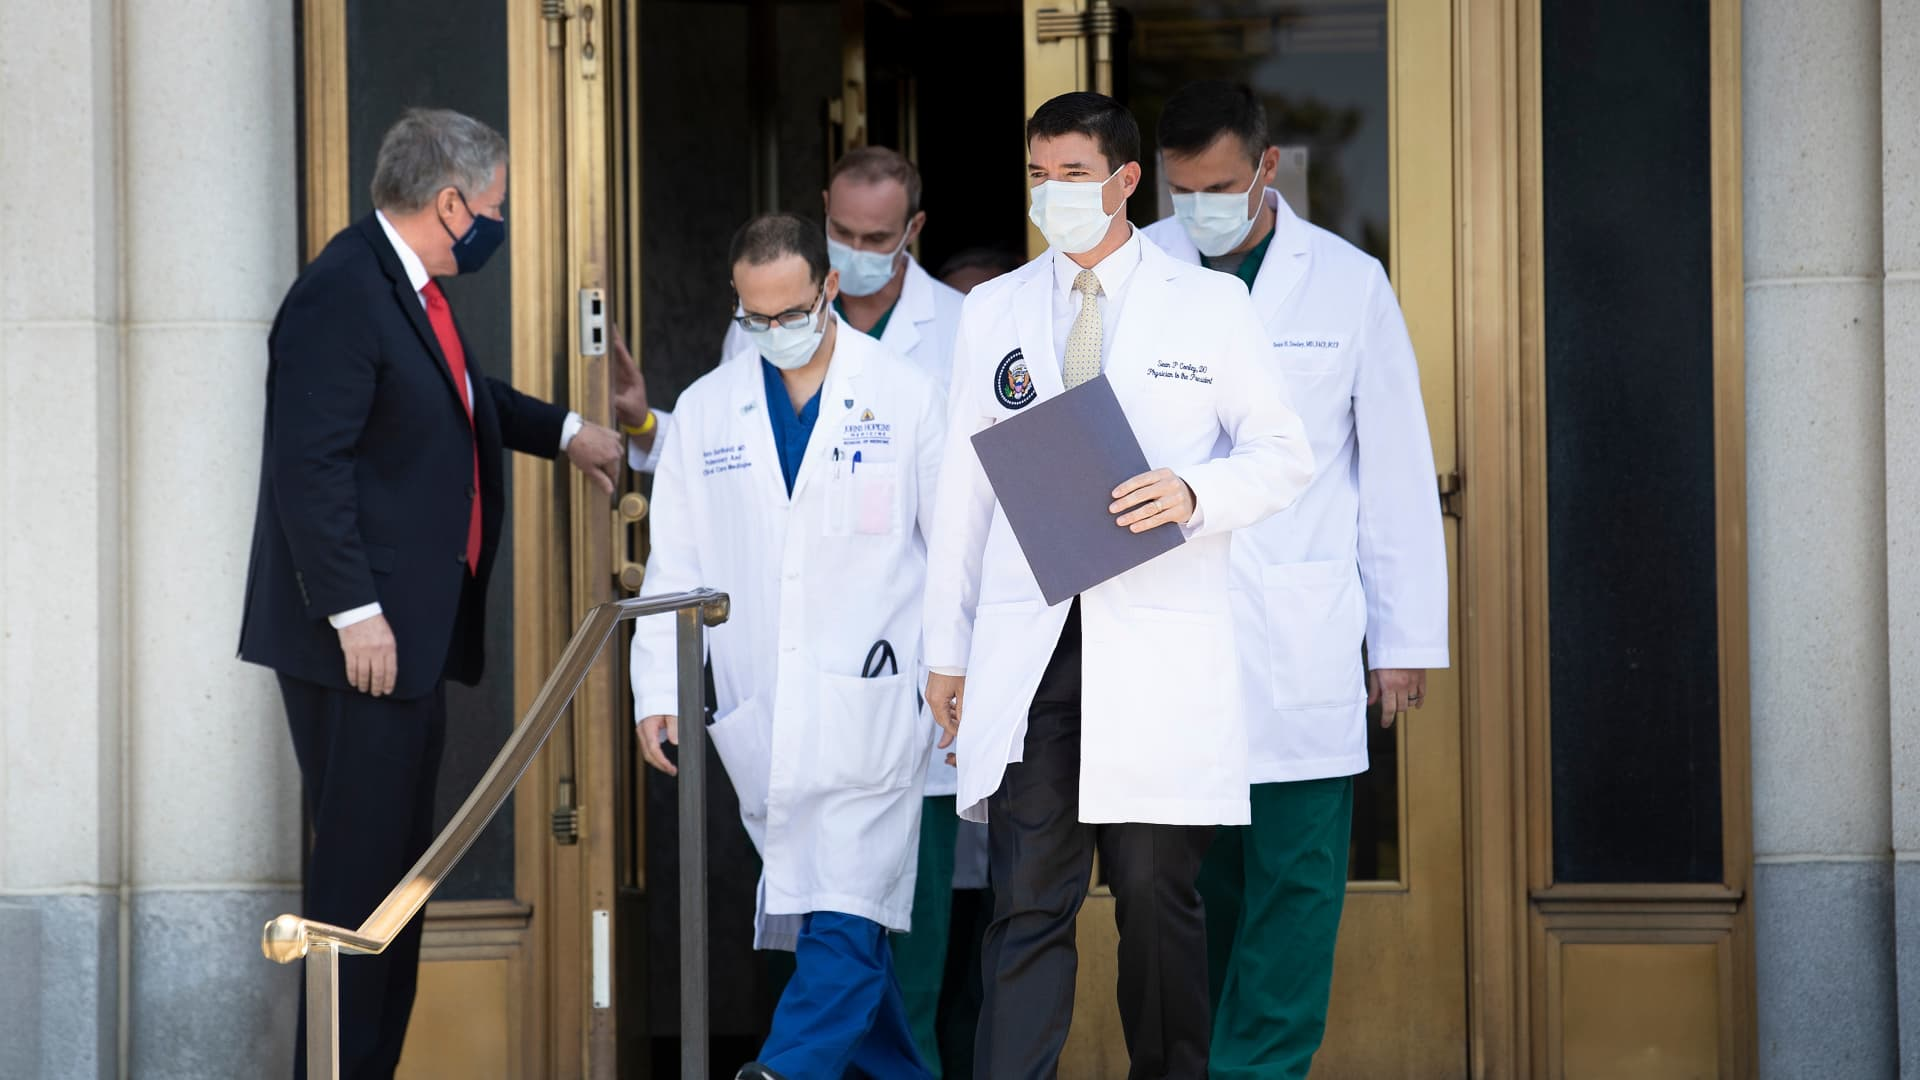 Acting White House Chief of Staff Mark Meadows holds the door for Sean Conley(front C), Physician to US President Donald Trump, and other members of the President's medical team as they arrive to give an update on the President's health at Walter Reed Medical Center during treatment for a COVID-19 infection October 4, 2020, in Bethesda, Maryland.